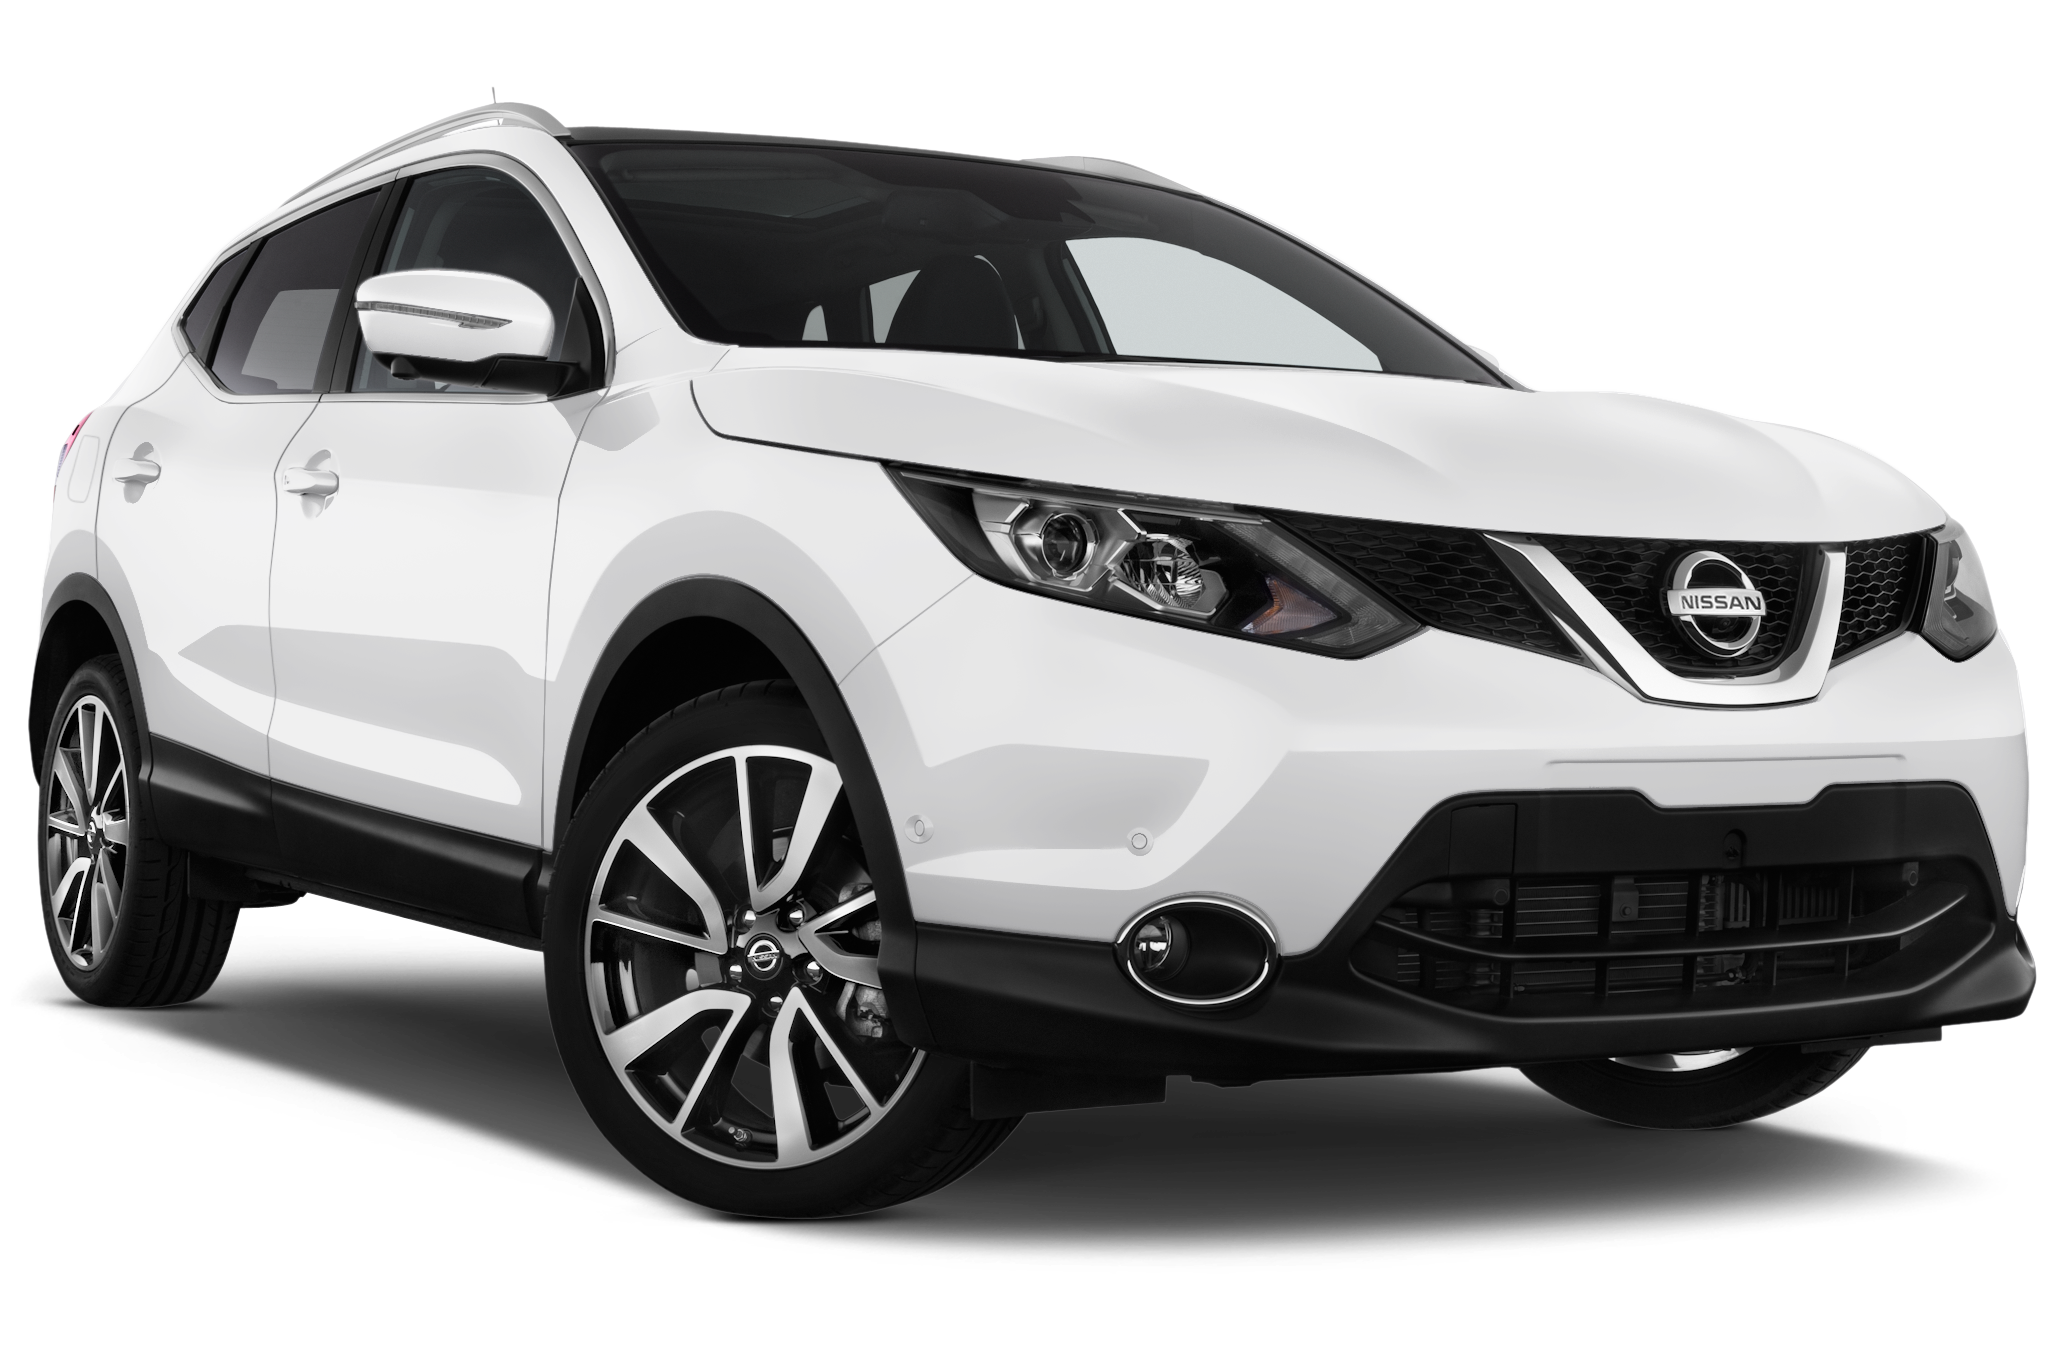 nissan qashqai vehicle review arval uk ltd. Black Bedroom Furniture Sets. Home Design Ideas